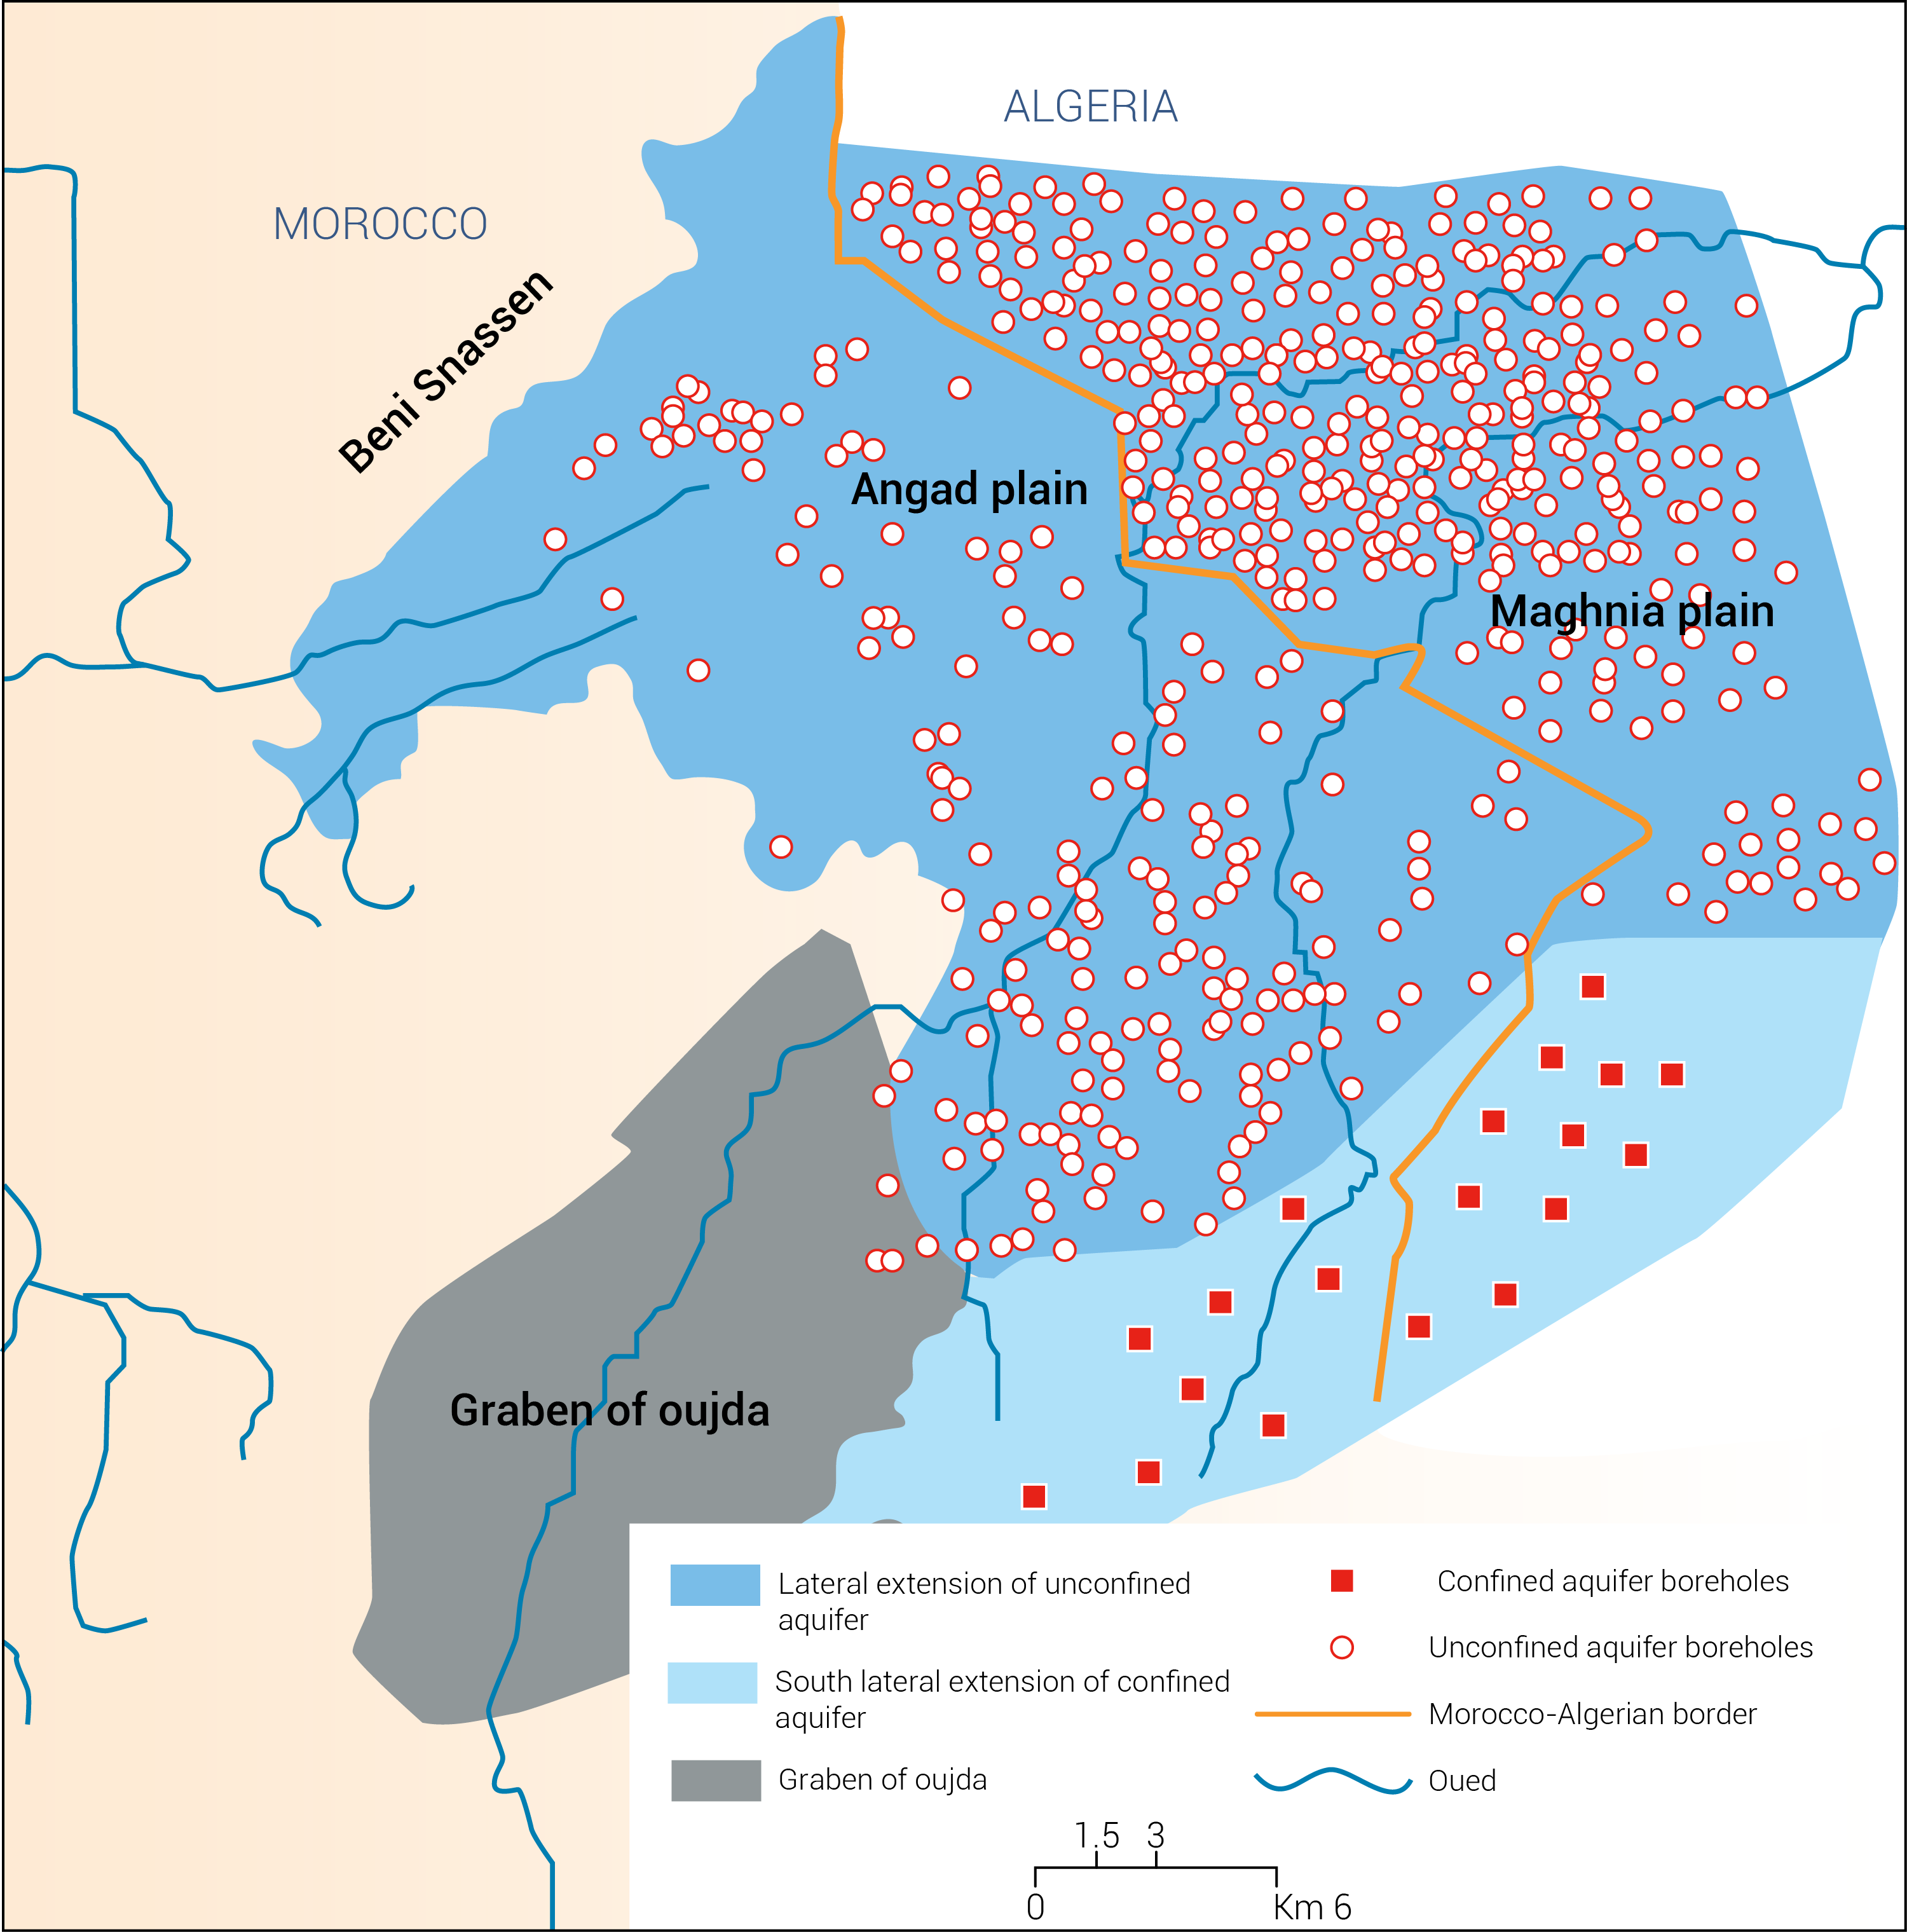 Transboundary aquifers of the Bounaim-Tafna basin Shared water resources in Morocco